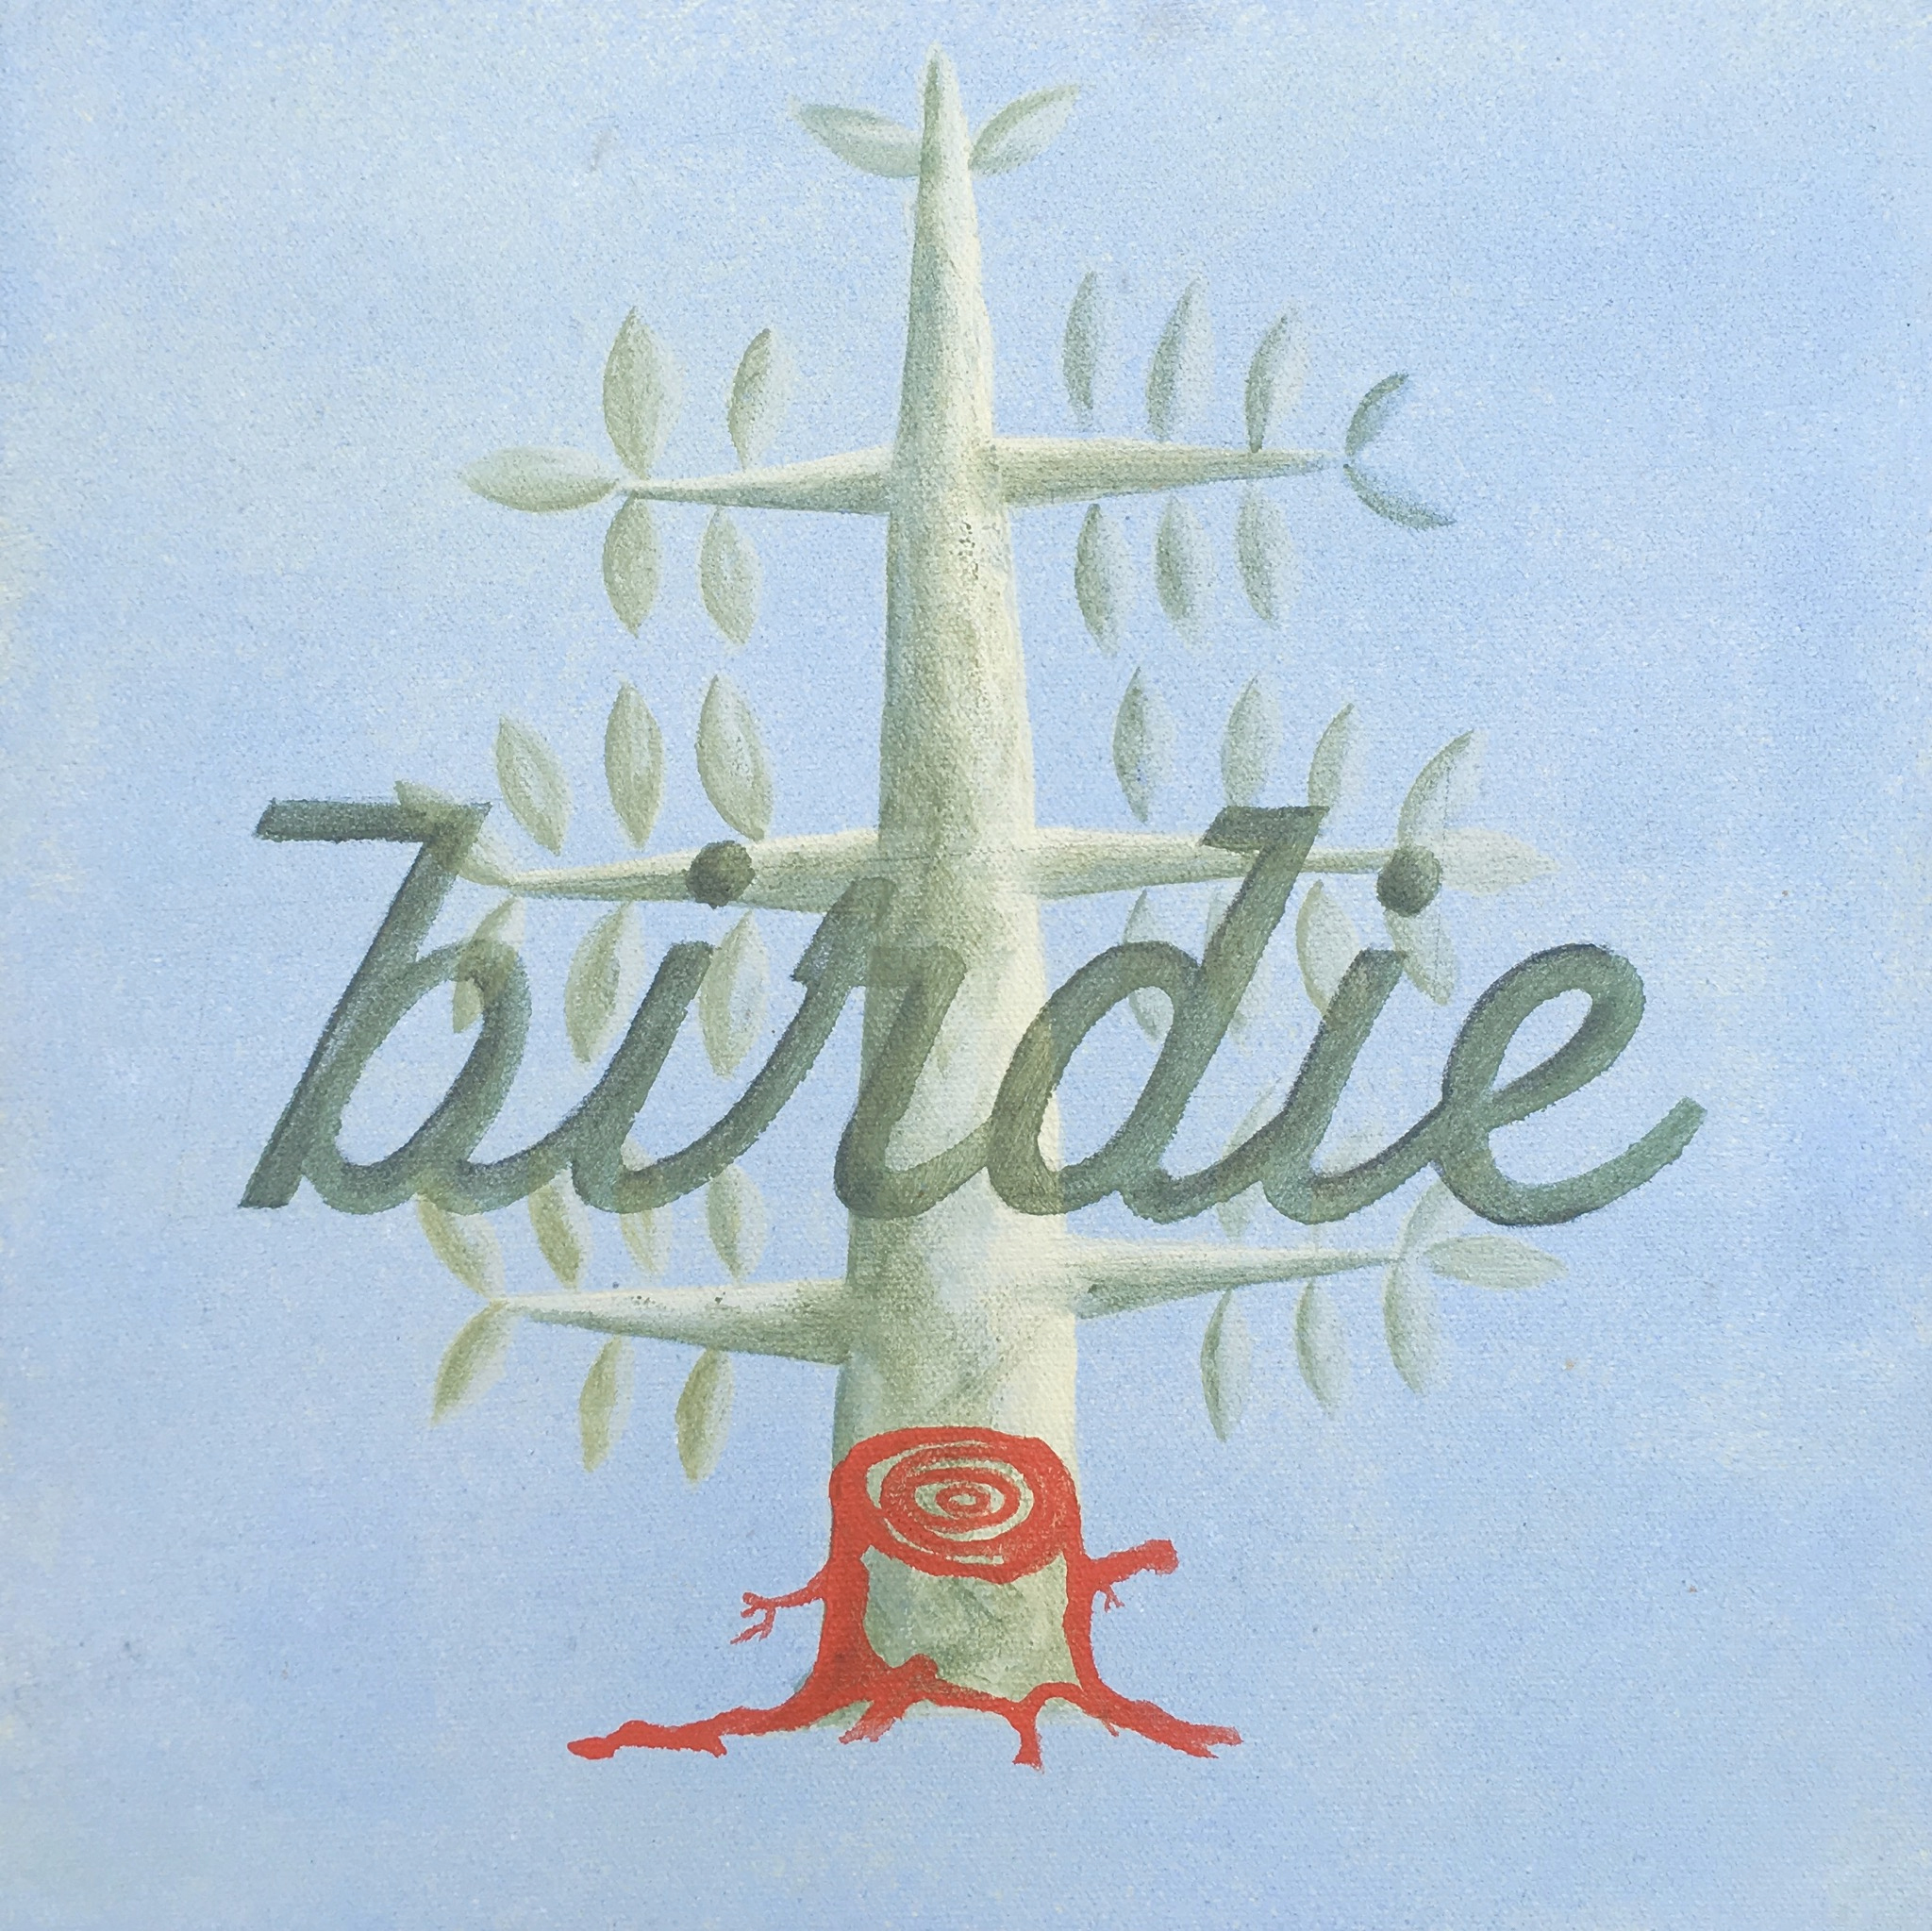 Birdie: A painting Made by Wanderlust